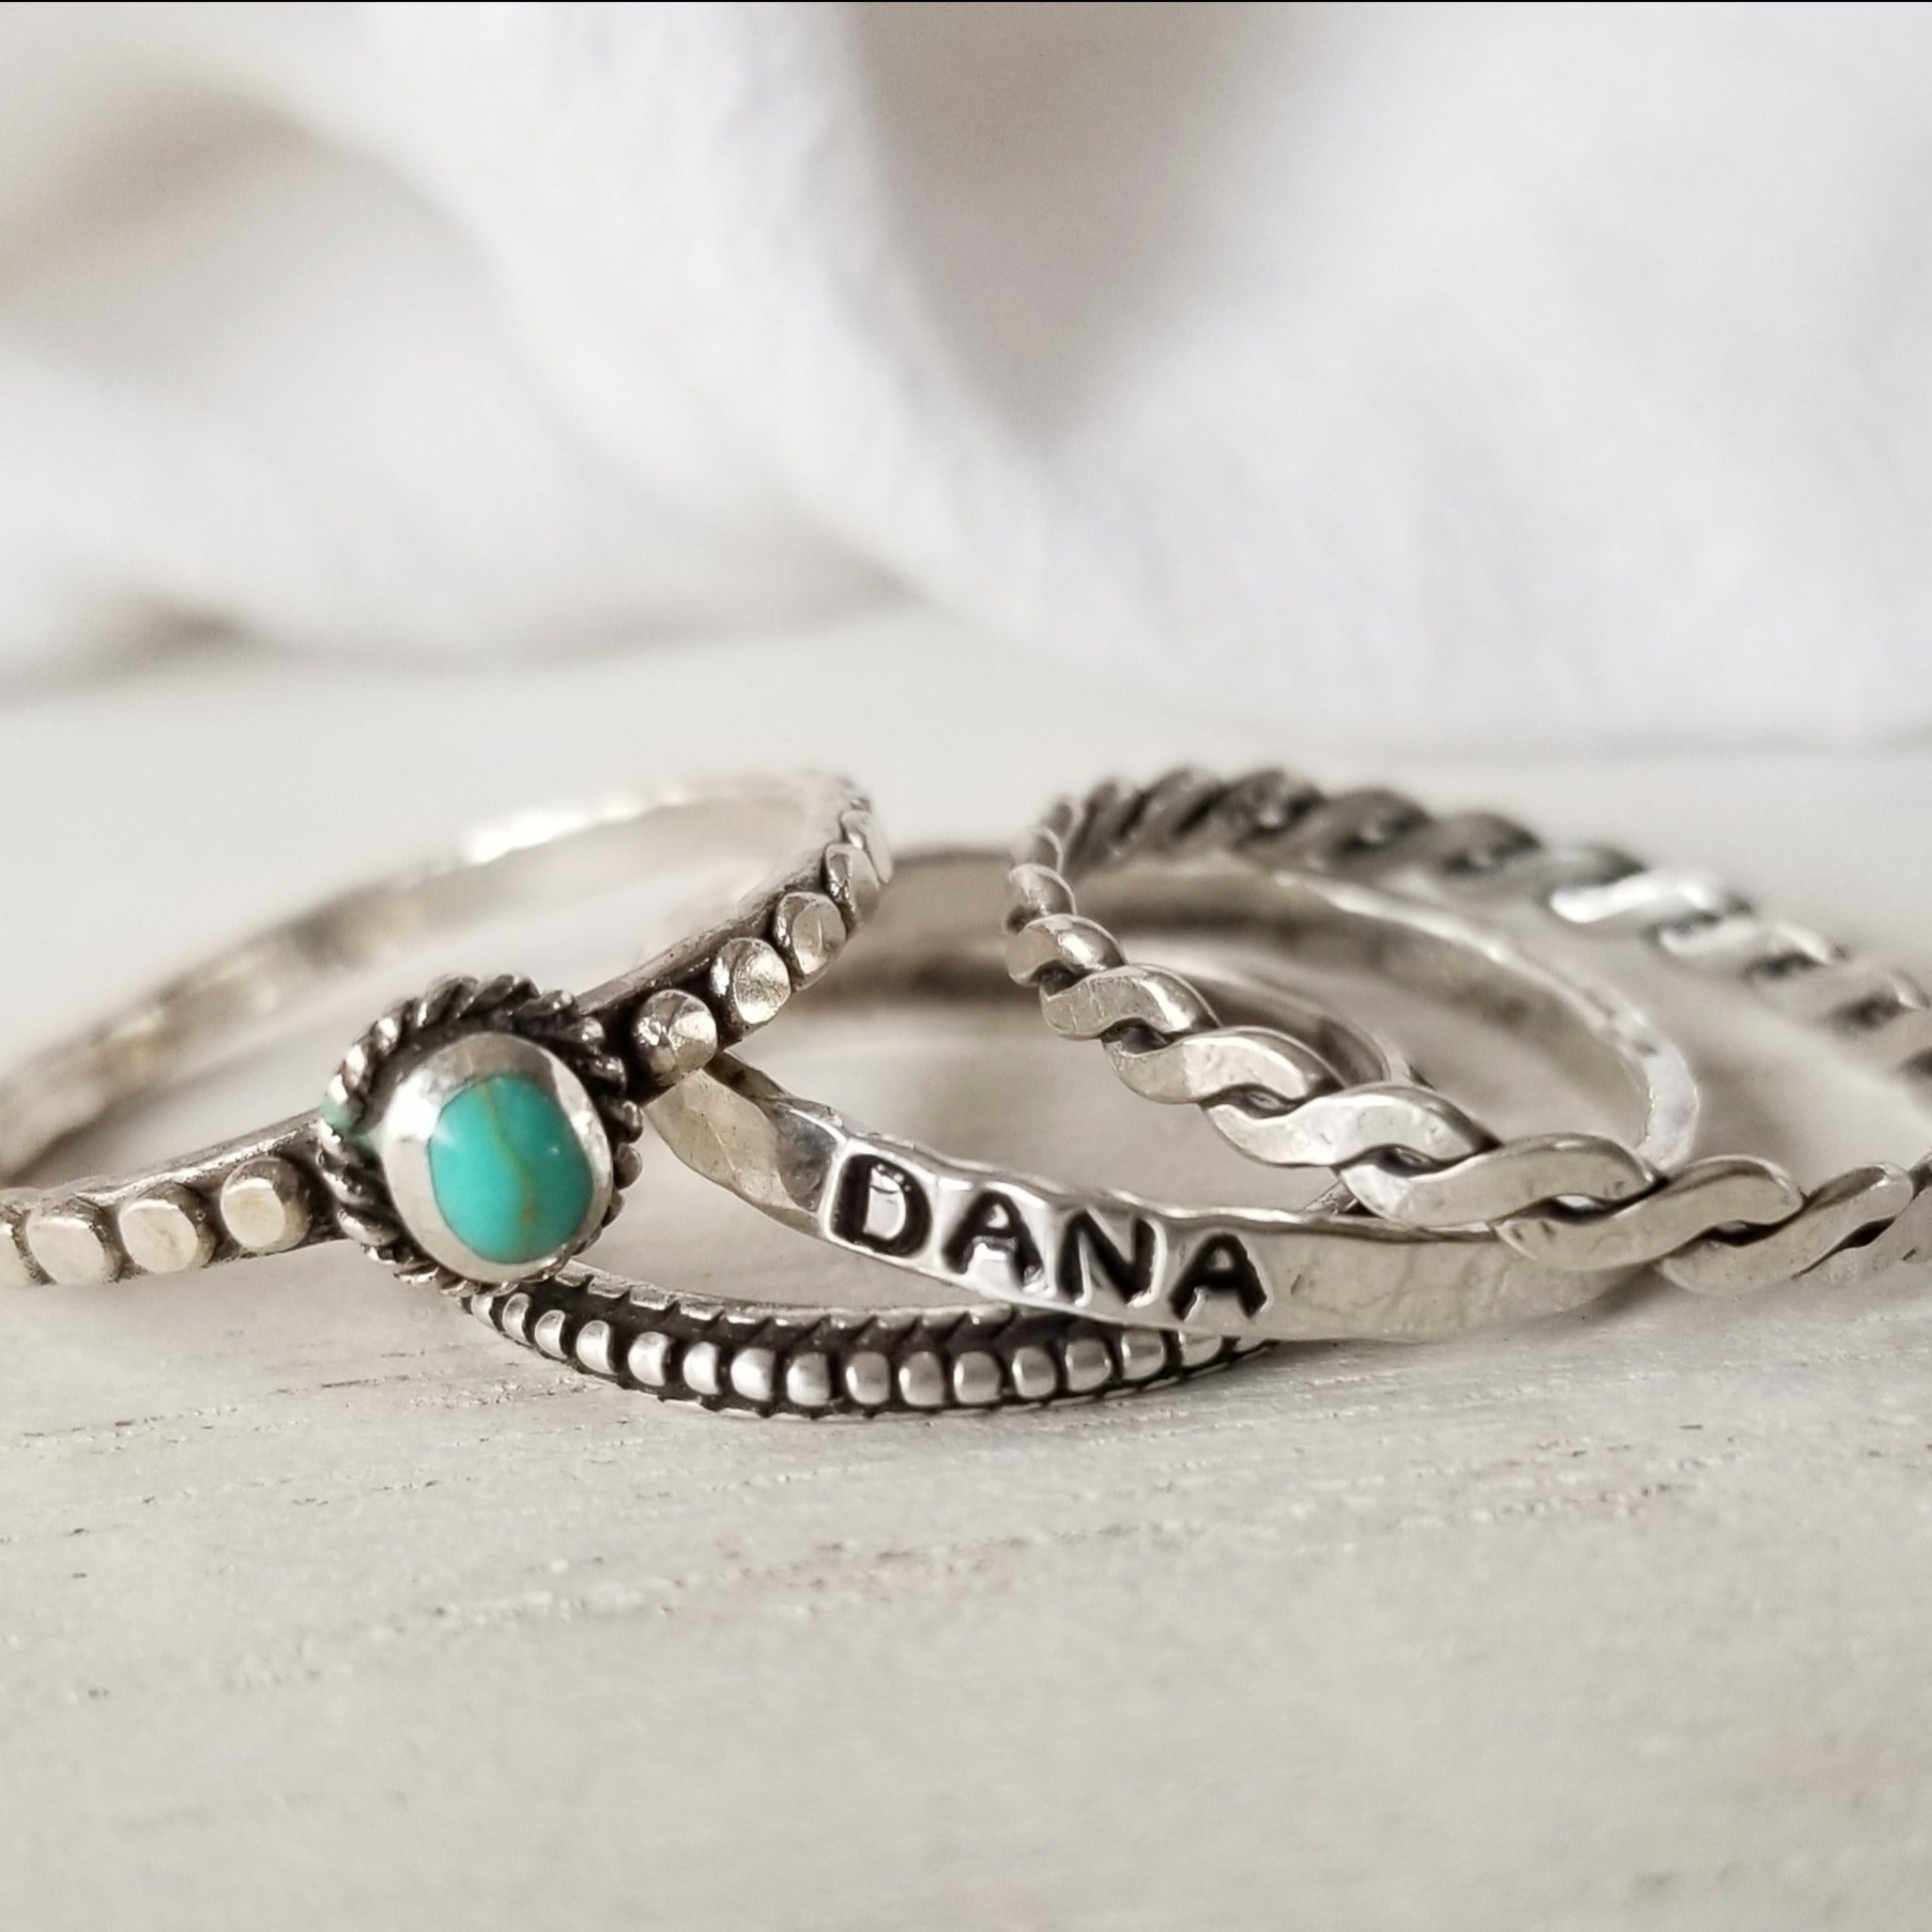 4pc Stacking Name and Turquoise Ring Set - Sterling Silver